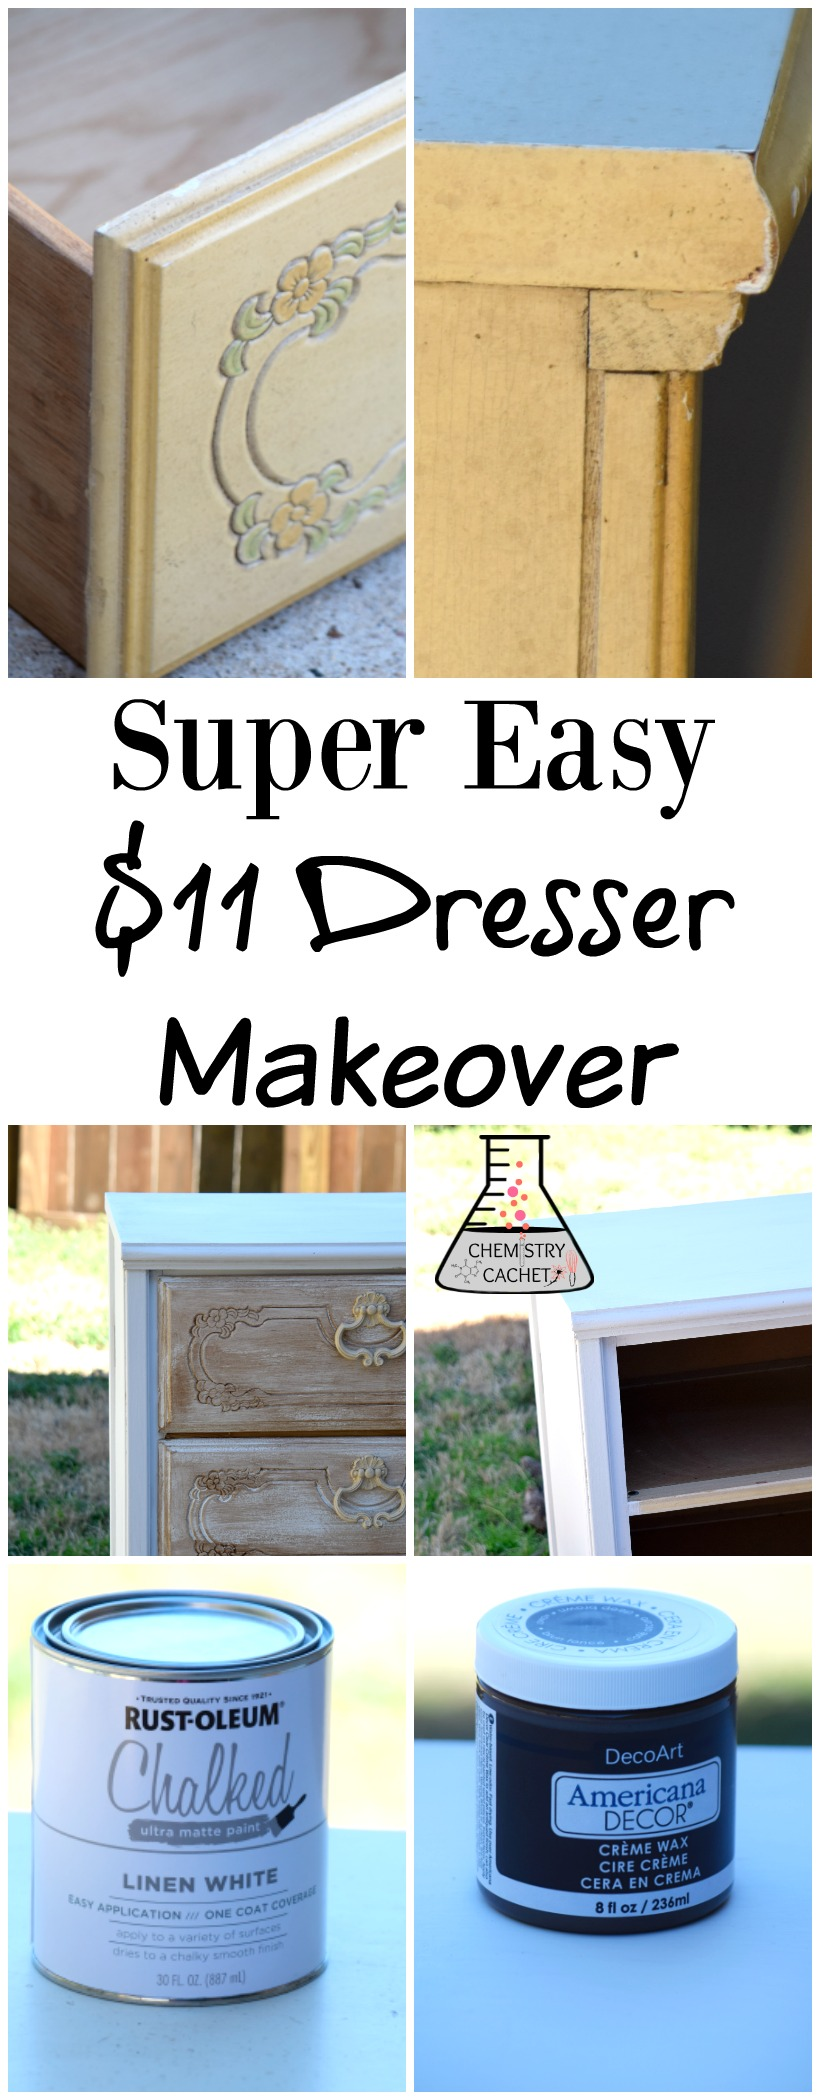 Super Easy Dresser Makeover for $11. Full tutorial on chemistrycachet.com